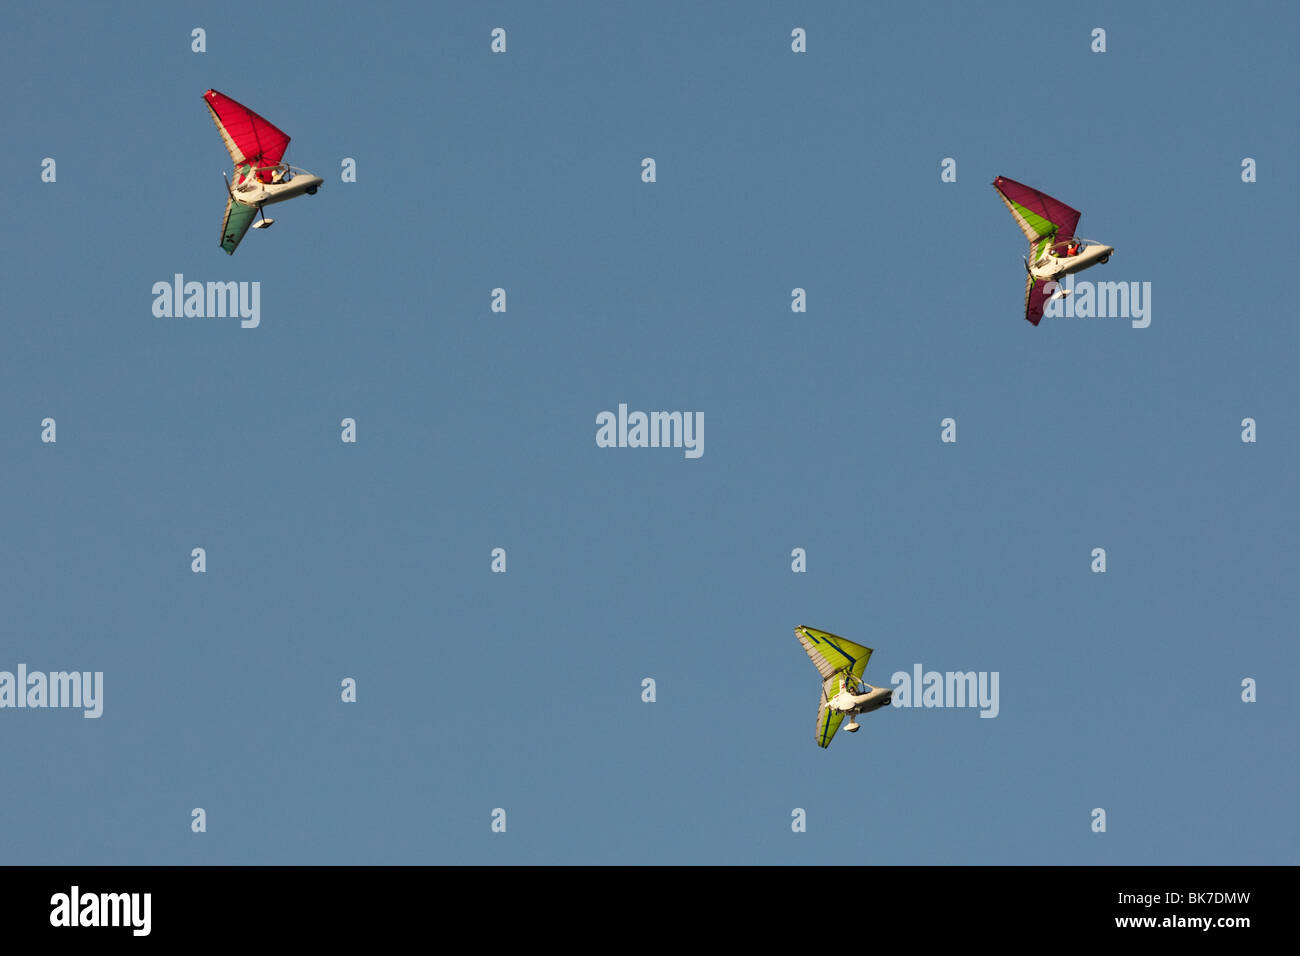 Ultralight planes carrying tourists fly near Pokhara, Nepal on Tuesday October 27, 2009. - Stock Image